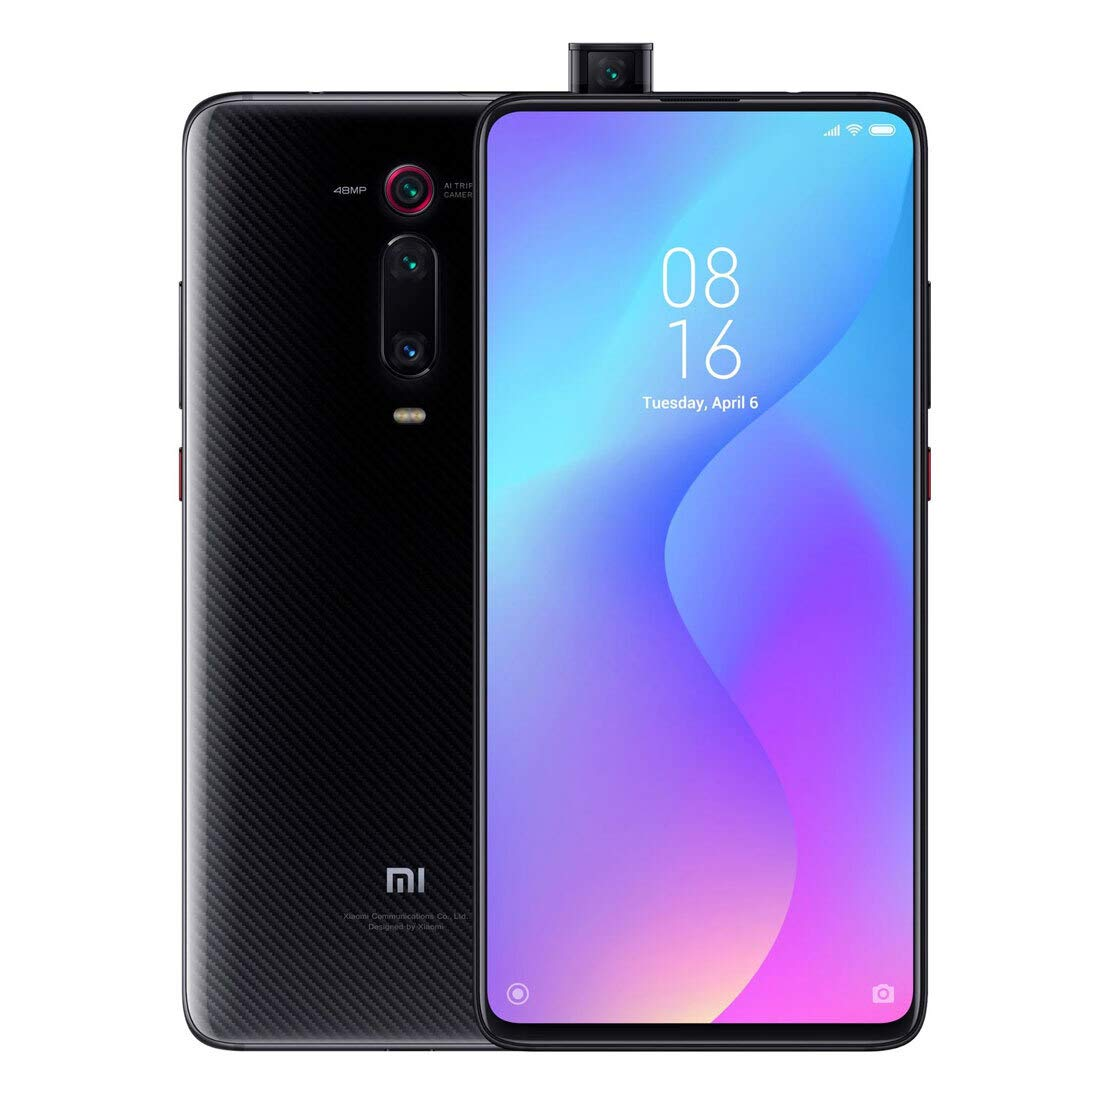 xiaomi-mi-9t-128gb-6gb-ram-639-amoled-fhd-full-screen-display-48mp-triple-camera-global-4g-lte-dual-sim-gsm-factory-unlocked-carbon-black